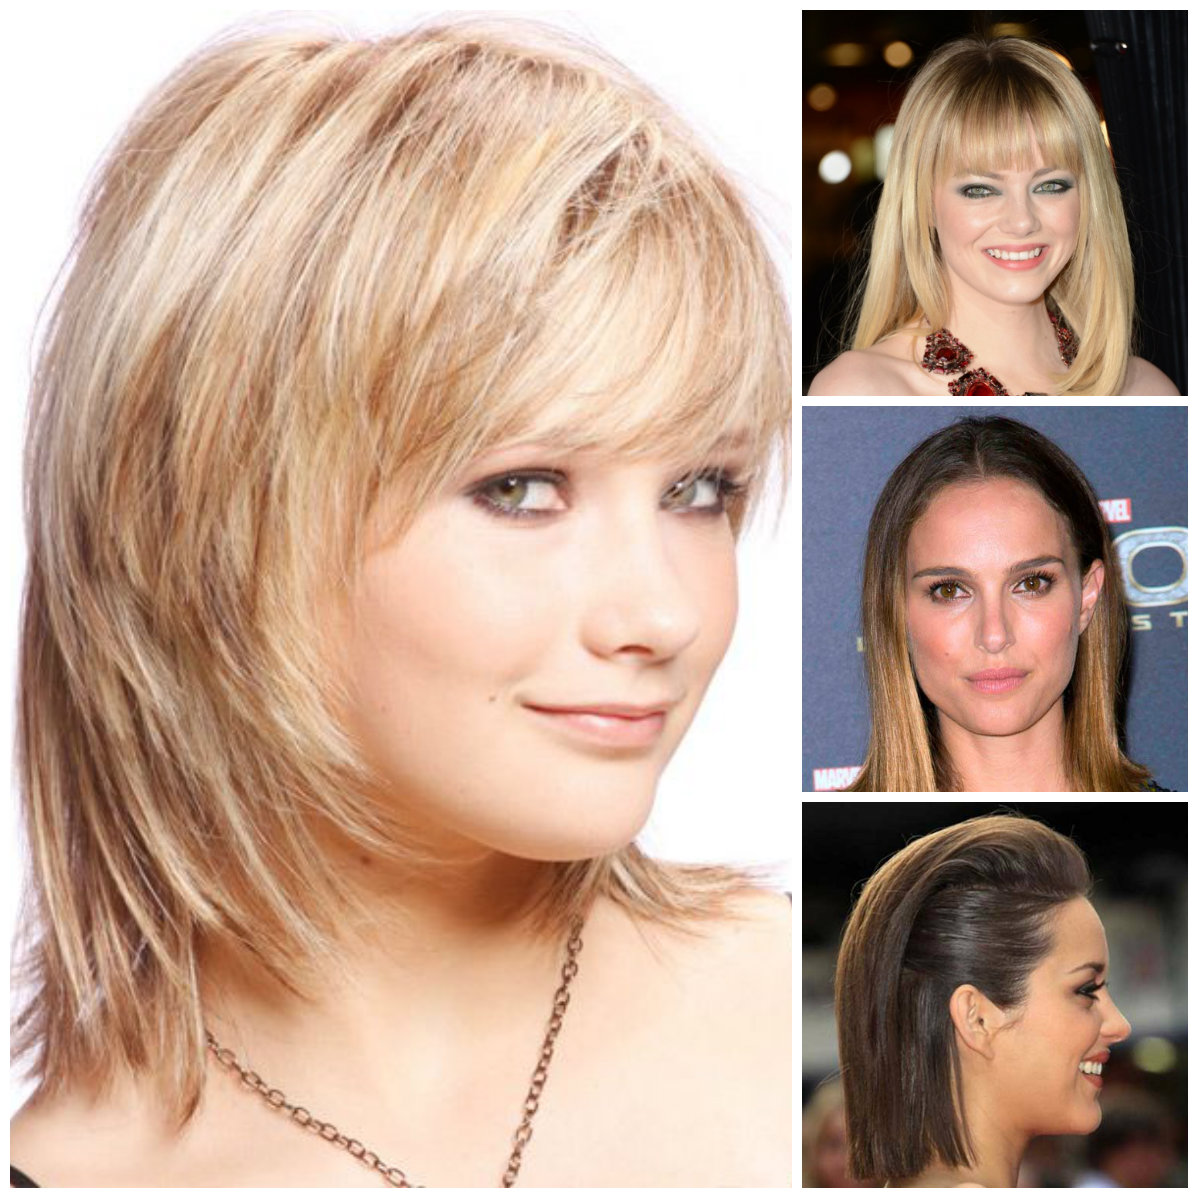 2017 haircuts, hairstyles and hair colors